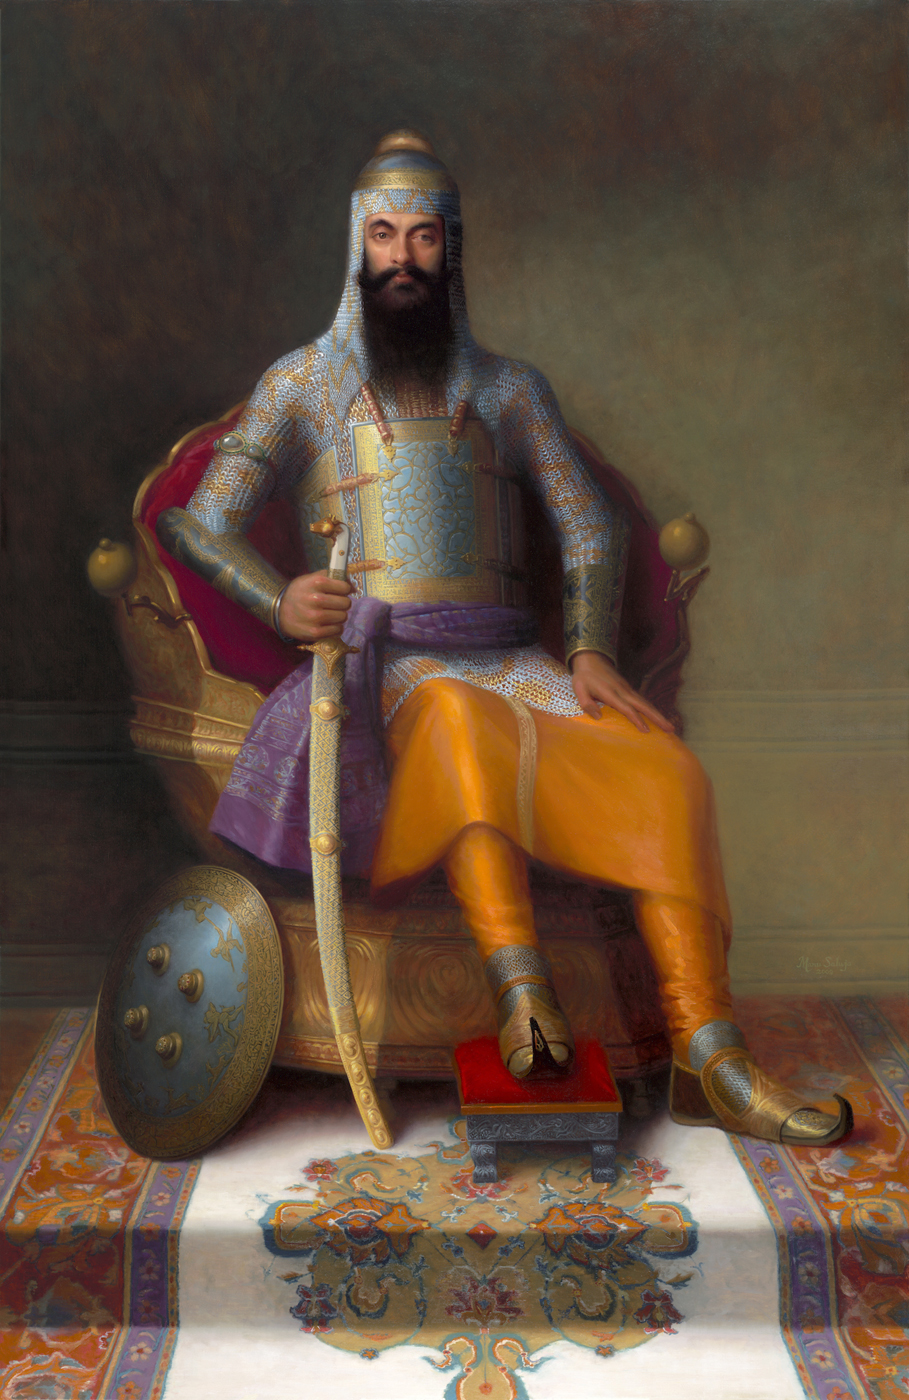 Maharajah Ranjit Singh, The Lion of the Punjab